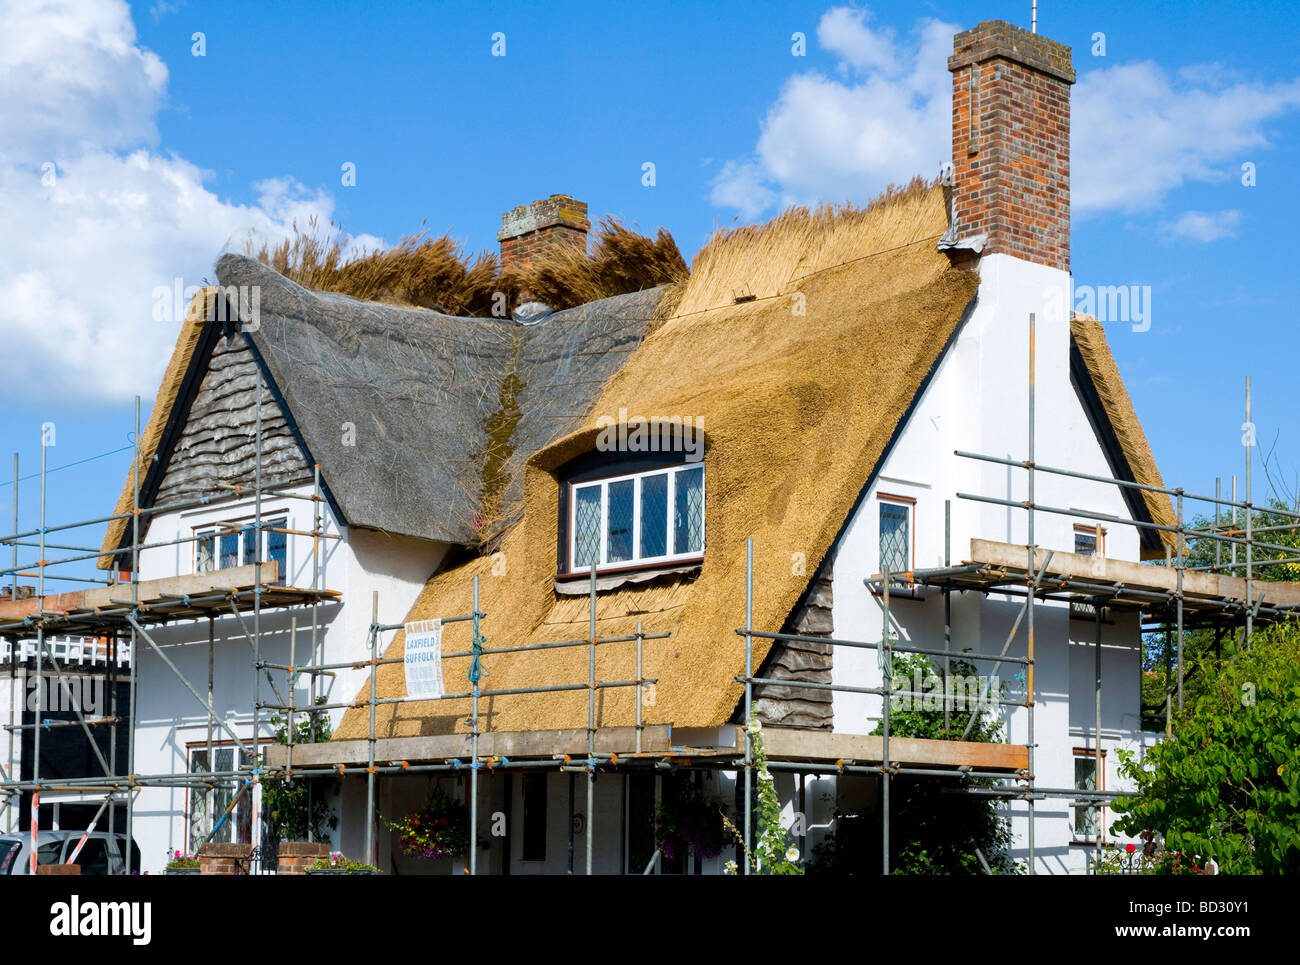 Old thatched roof in the process of being replaced by new thatch on a cottage in Walberswick, Suffolk, England. - Stock Image